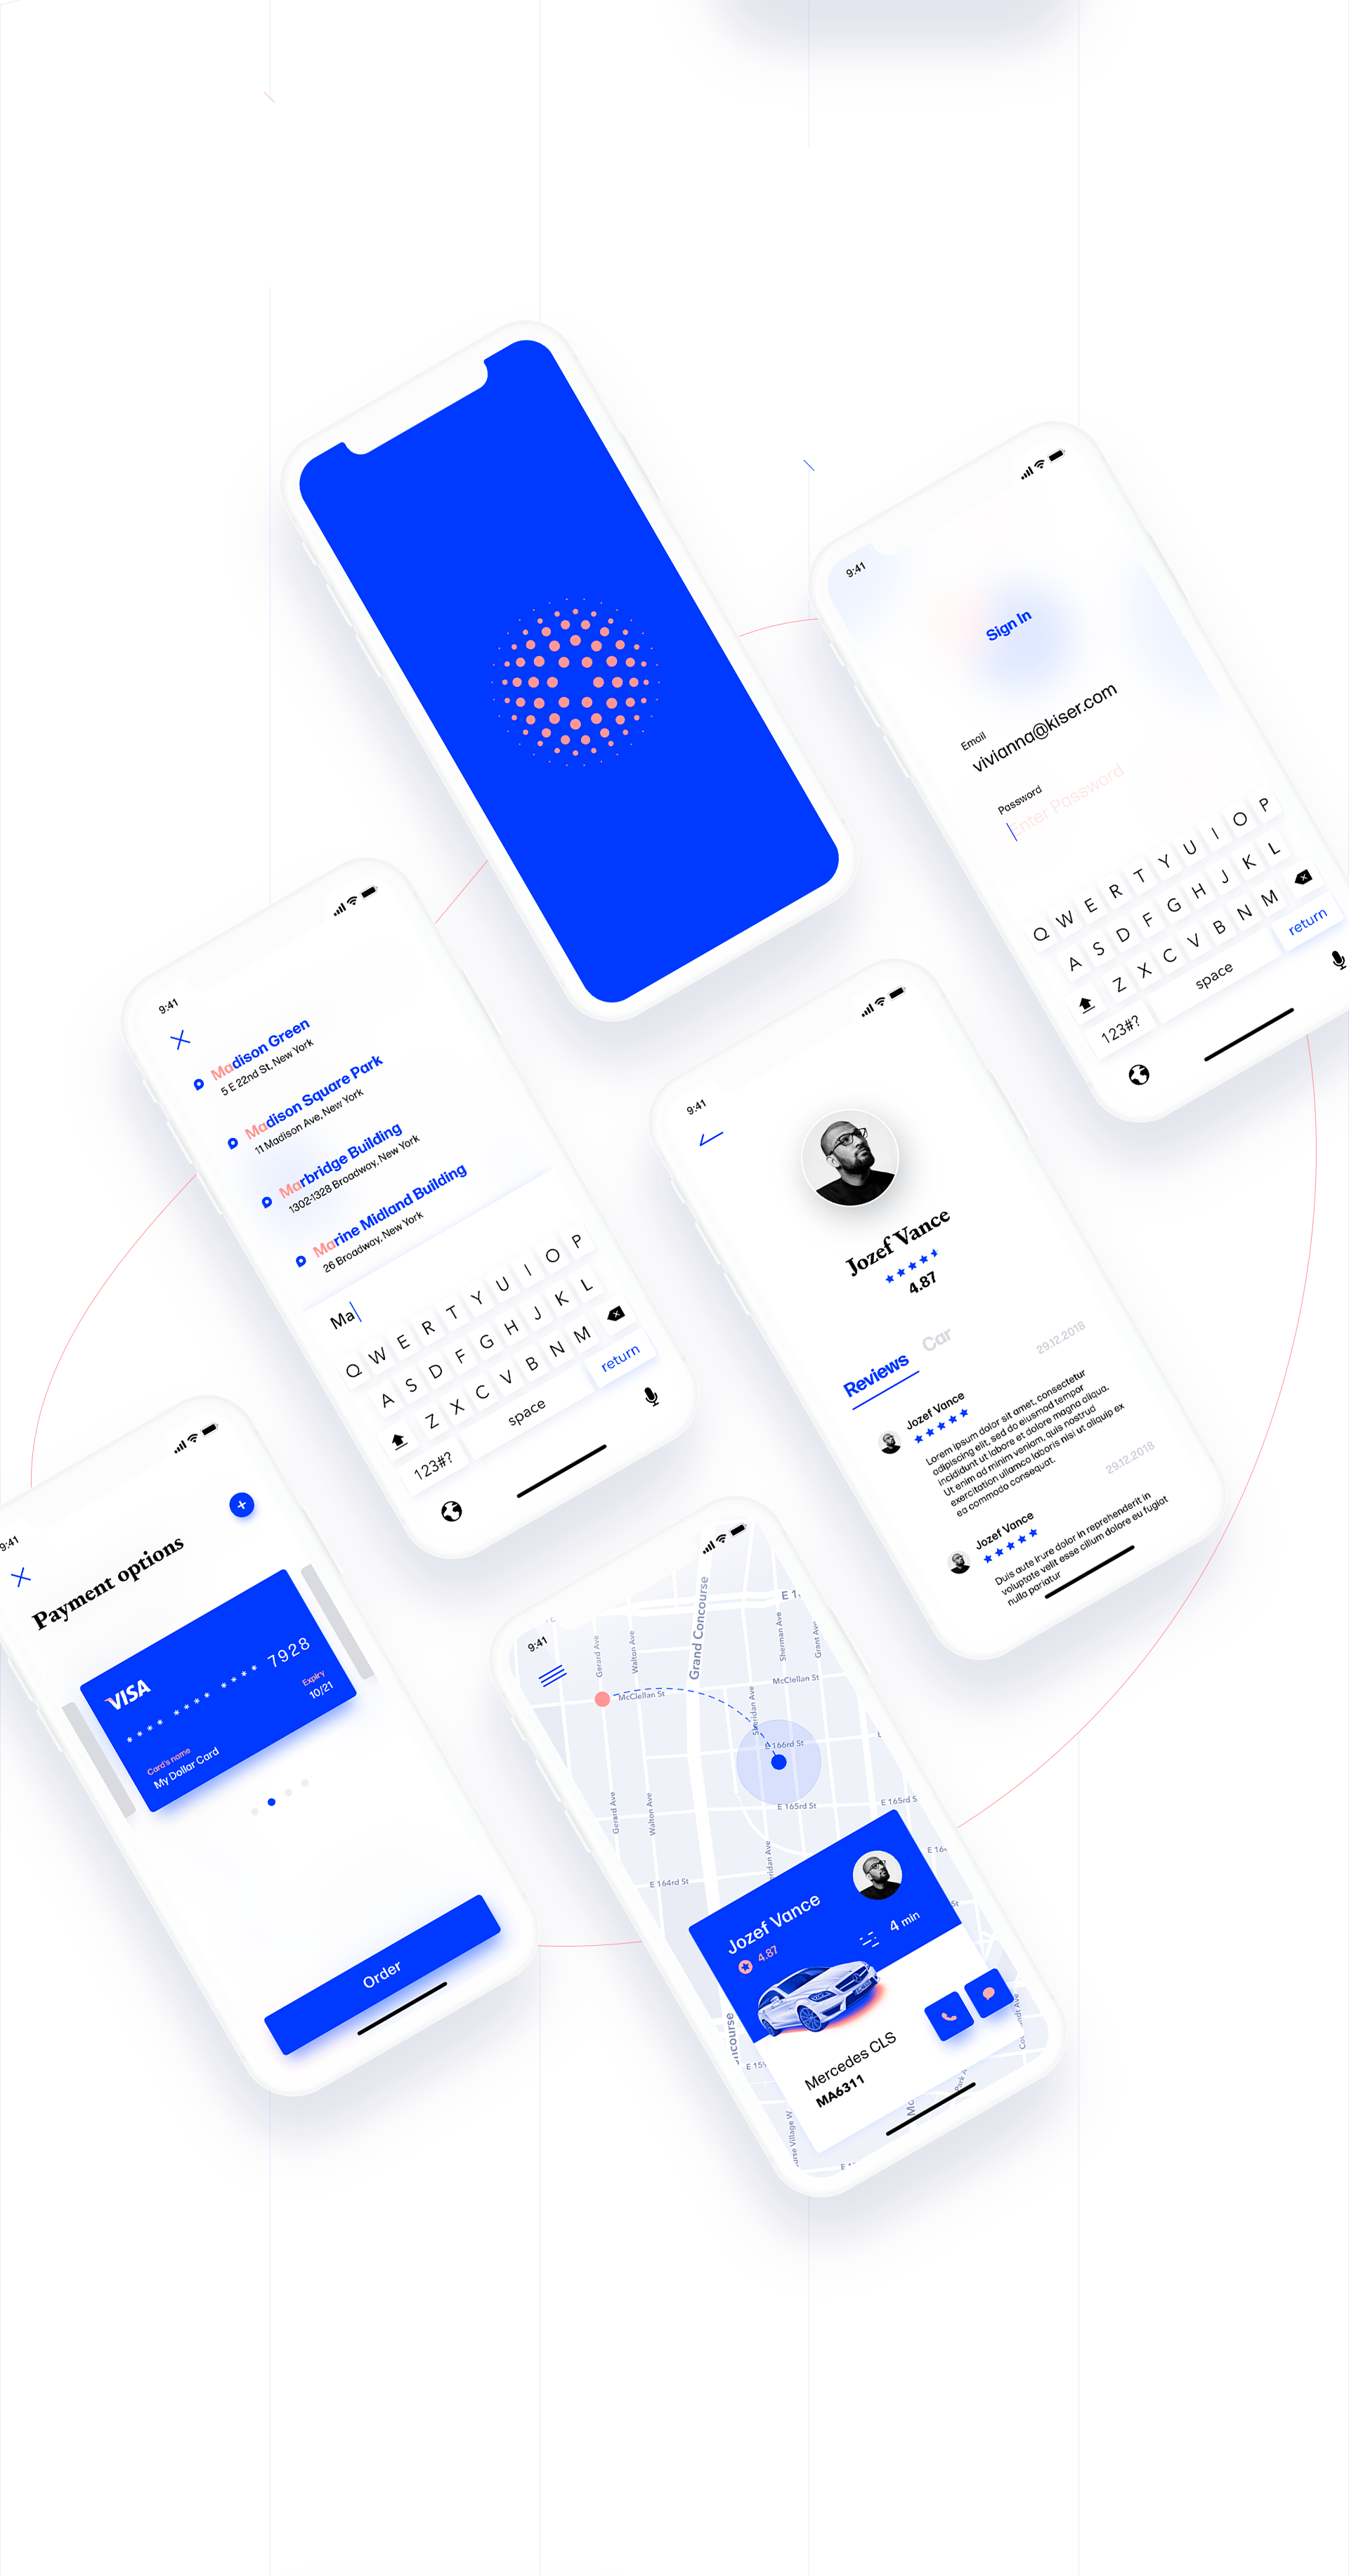 Mobile App Design: NYC Taxi App Concept using Adobe XD